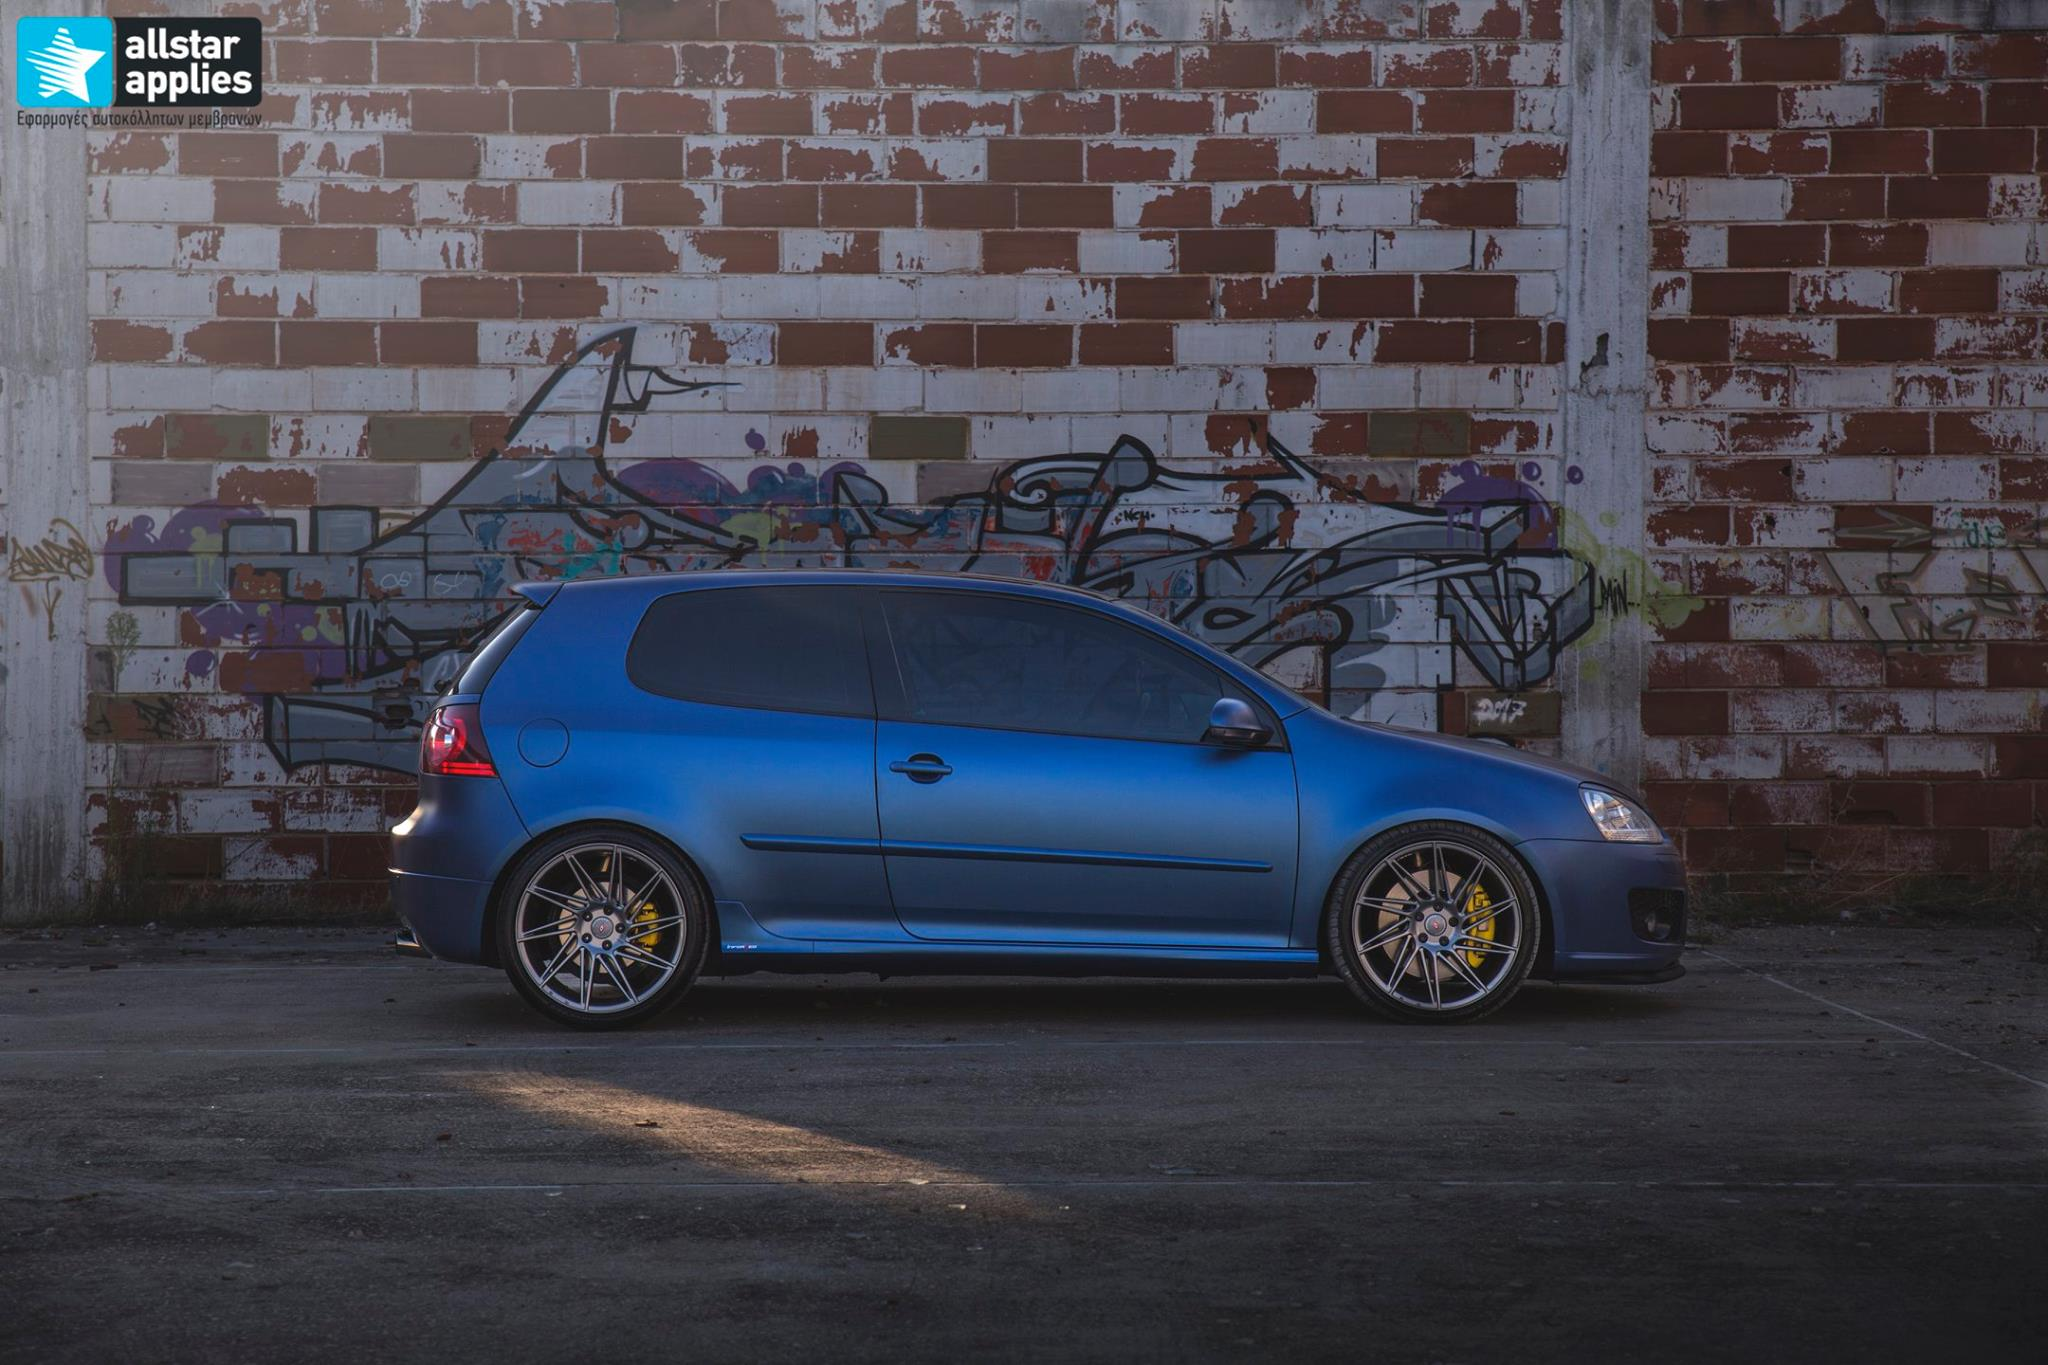 VW Golf 5 - Matt Trenton Blue (2)